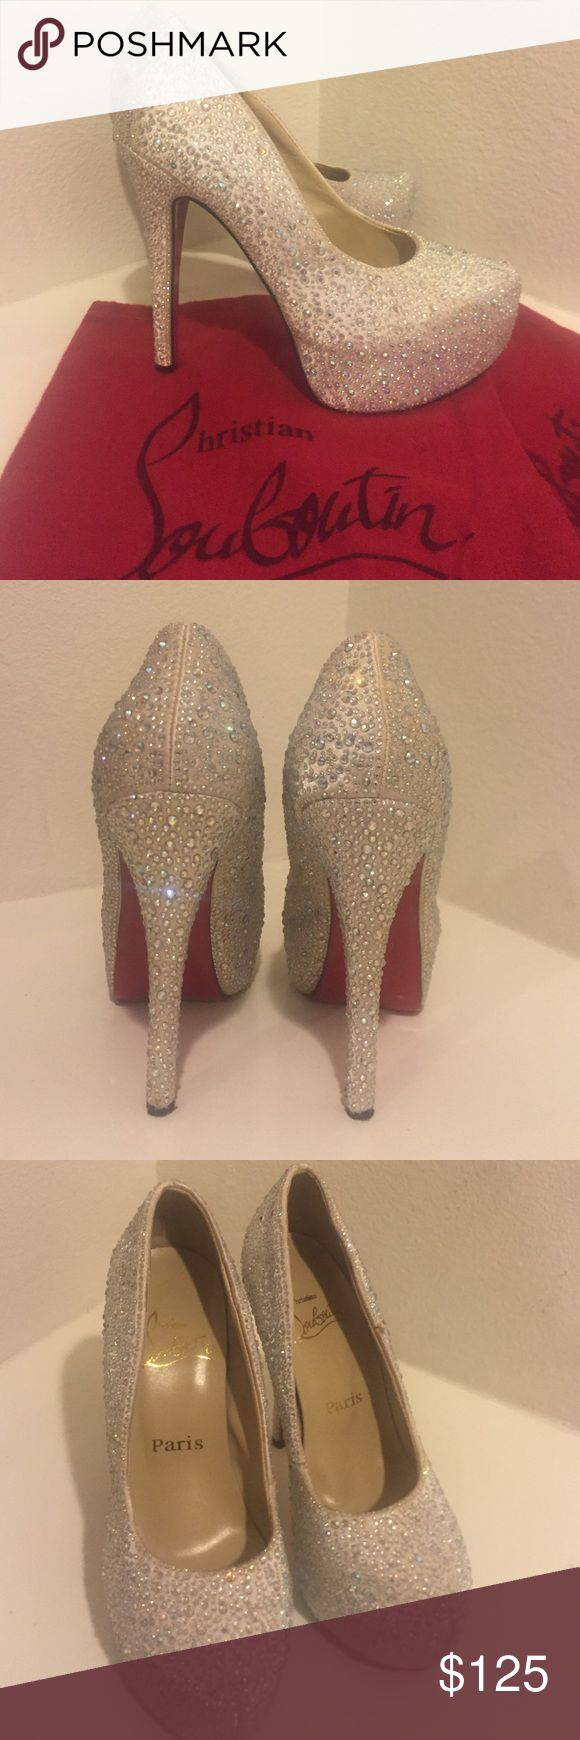 Diamonte heels Red bottoms looks soooo gorgeous (NOT REAL CL) Shoes say size 5(35) on the bottom but can also fit a 6(36) as well.. I am a true size 6 and fits me perfect.         Comes with dust bags 😄 Christian Louboutin Shoes Heels